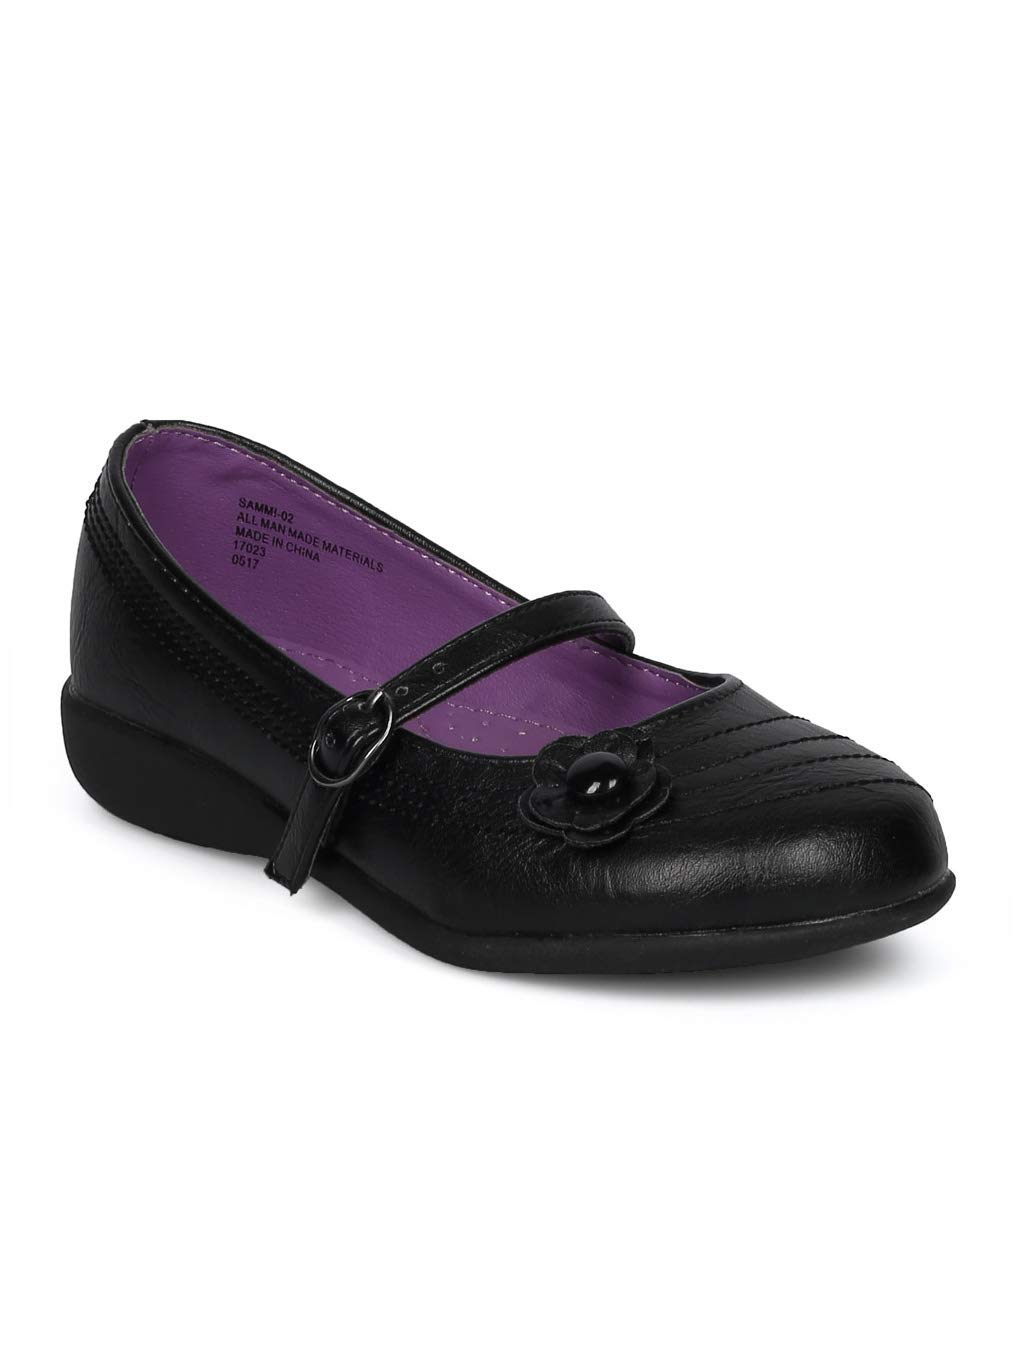 Schola Sammi-02 Girls Leatherette Round Toe Flower Applique Mary Jane Uniform Shoe HD42 - Black Leatherette (Size: Big Kid 3)